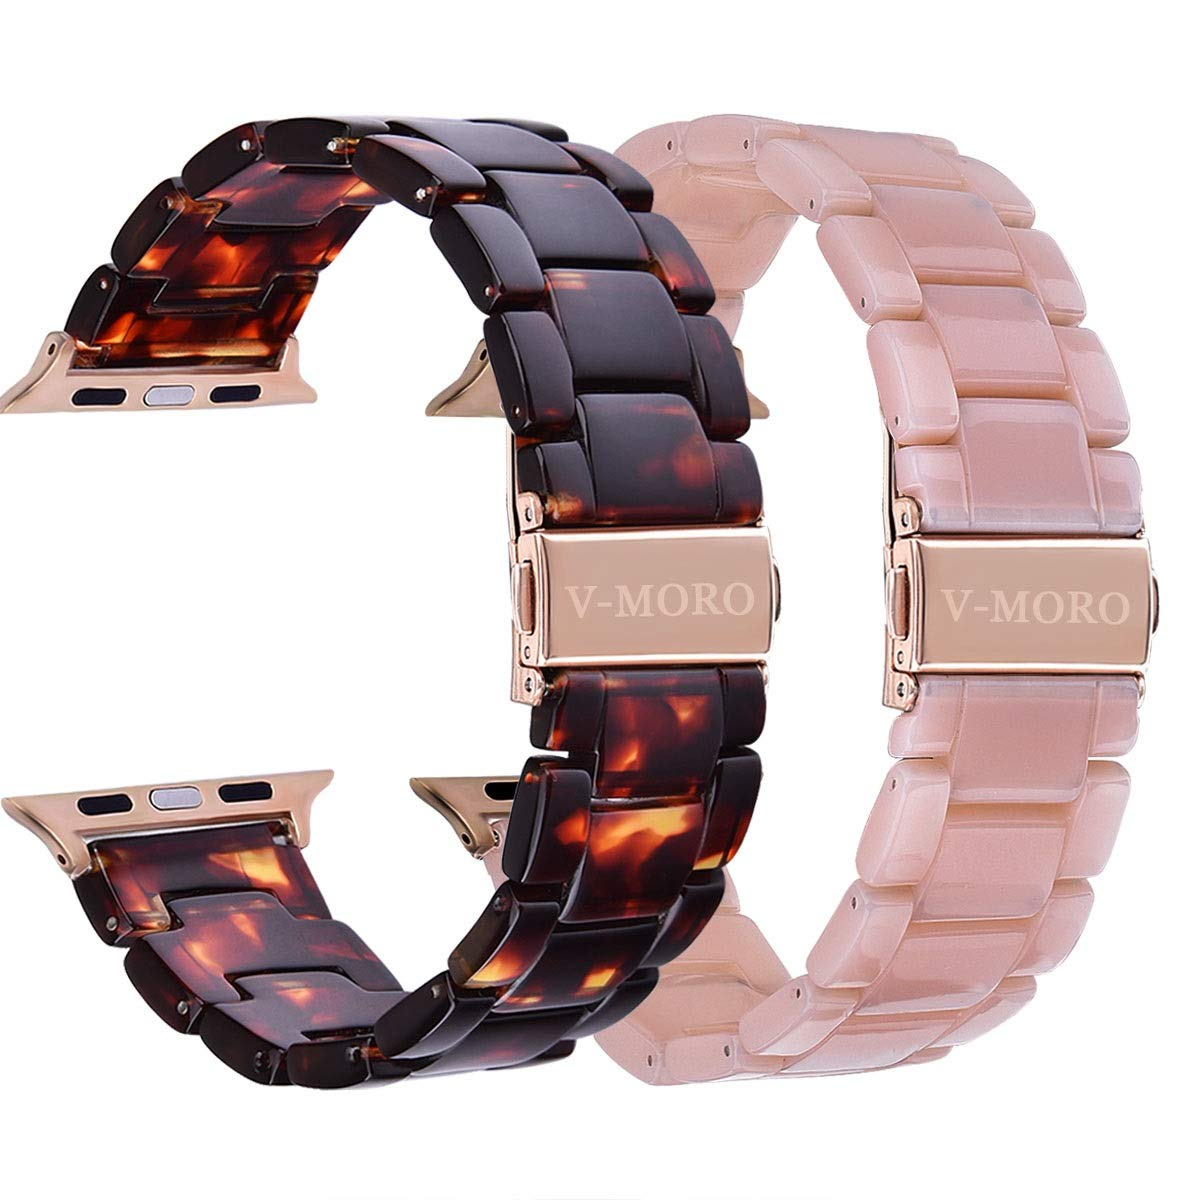 V-MORO Compatible Apple Watch Band 38mm 40mm Women Men- 2 Pack Resin iWatch Band Bracelet with Copper Stainless Steel Buckle for Apple Watch Series 4 Series 3 Series 2 Series 1 (Tortoise+Pink, 38mm) by V-MORO